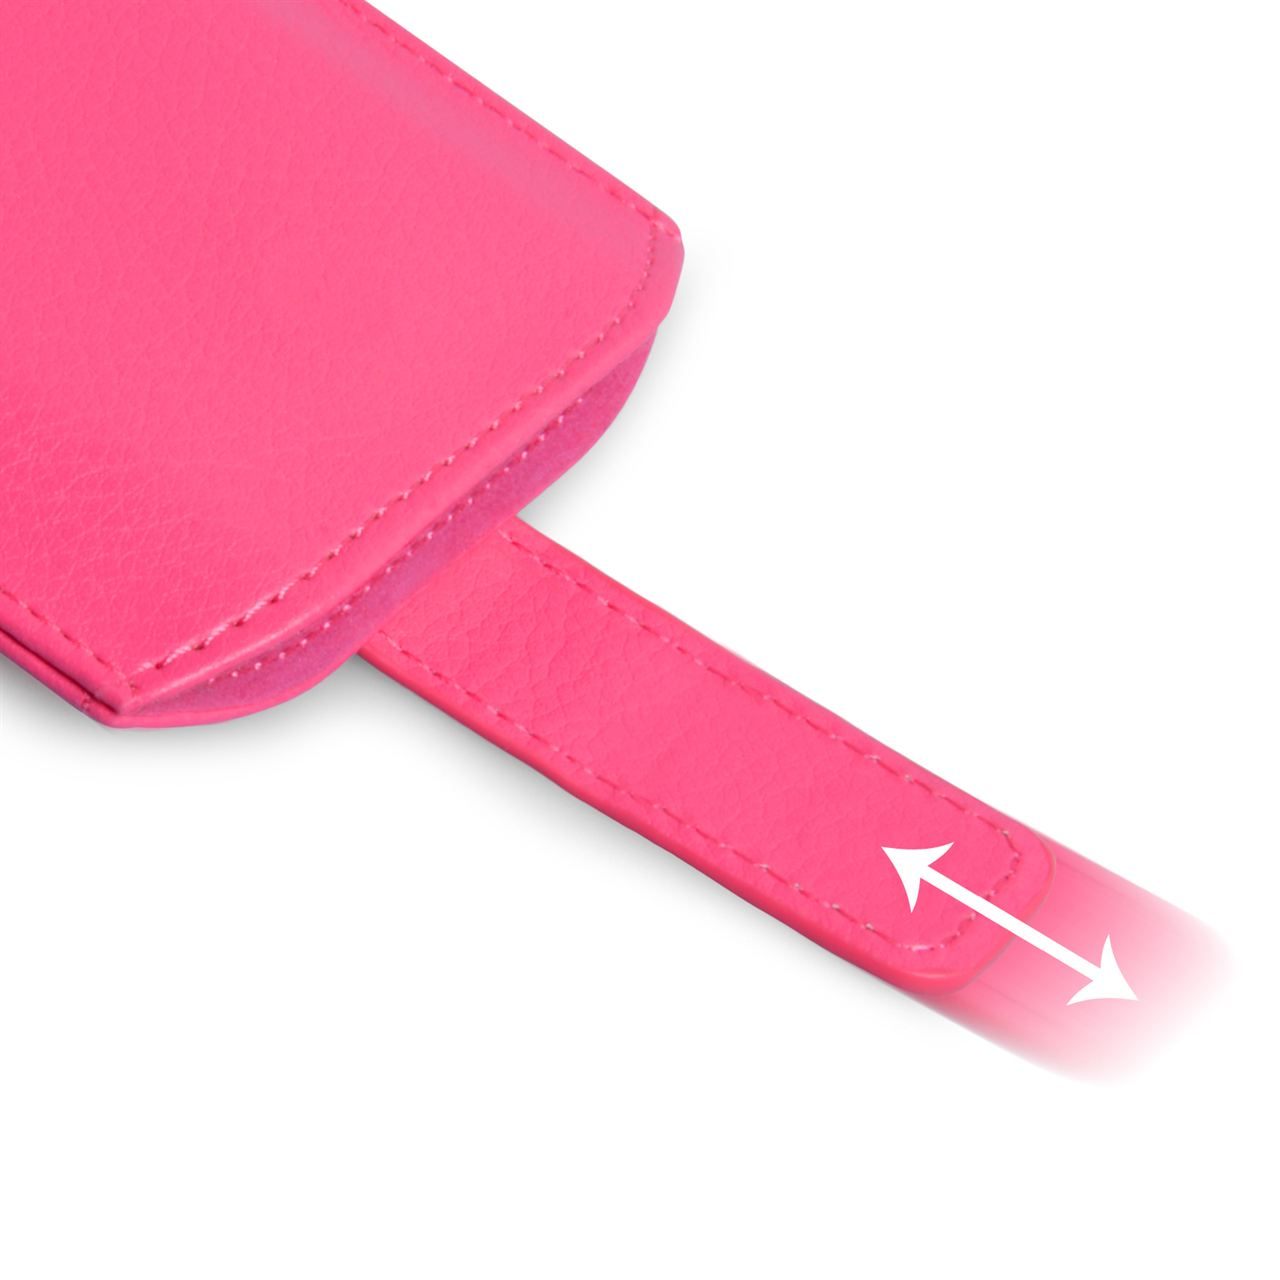 Caseflex Small Textured Faux Leather Return Phone Pouch - Pink